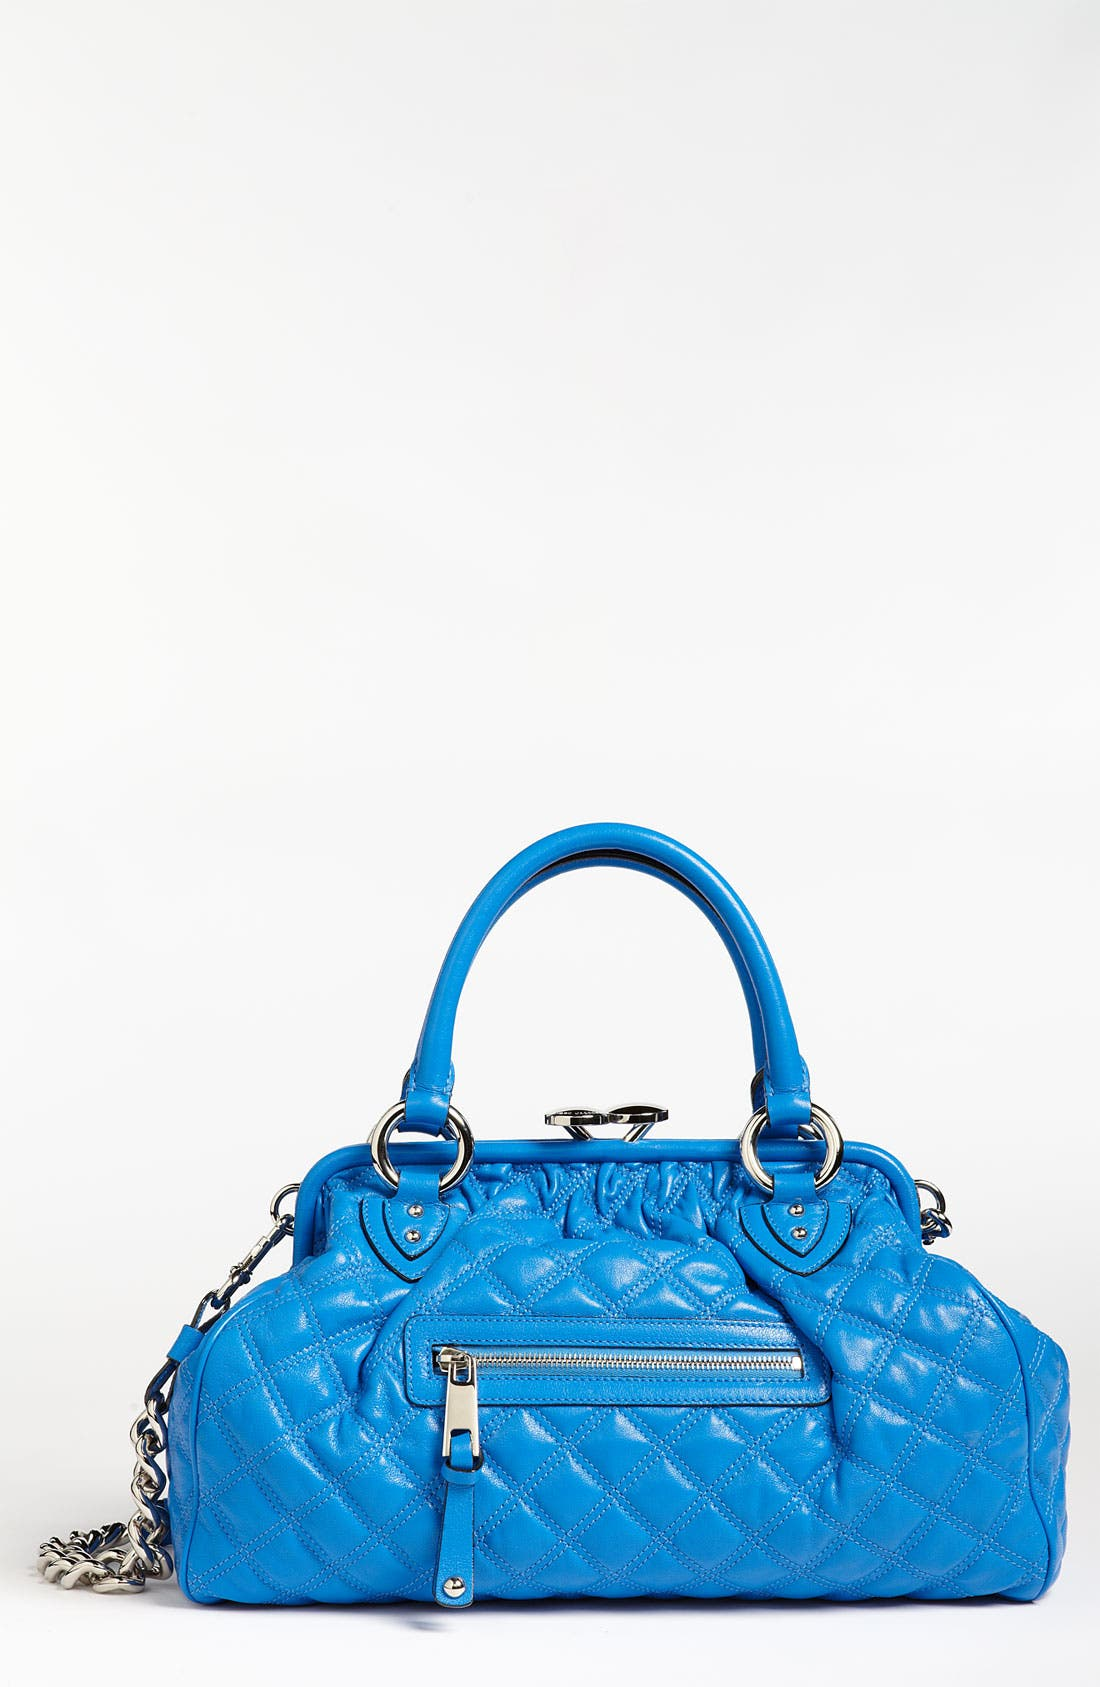 'Quilting Stam' Leather Satchel,                             Main thumbnail 1, color,                             Bluette/ Nickel